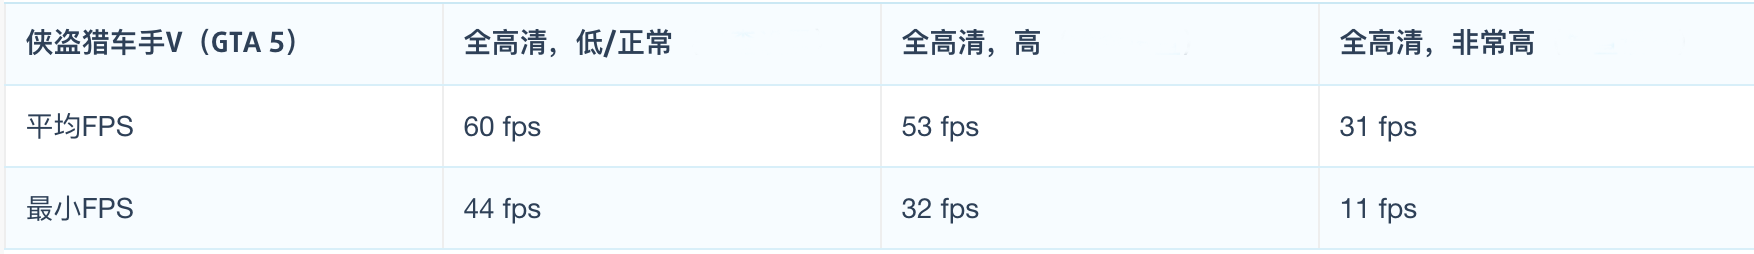 Dell 戴尔 XPS 15 9575 评测